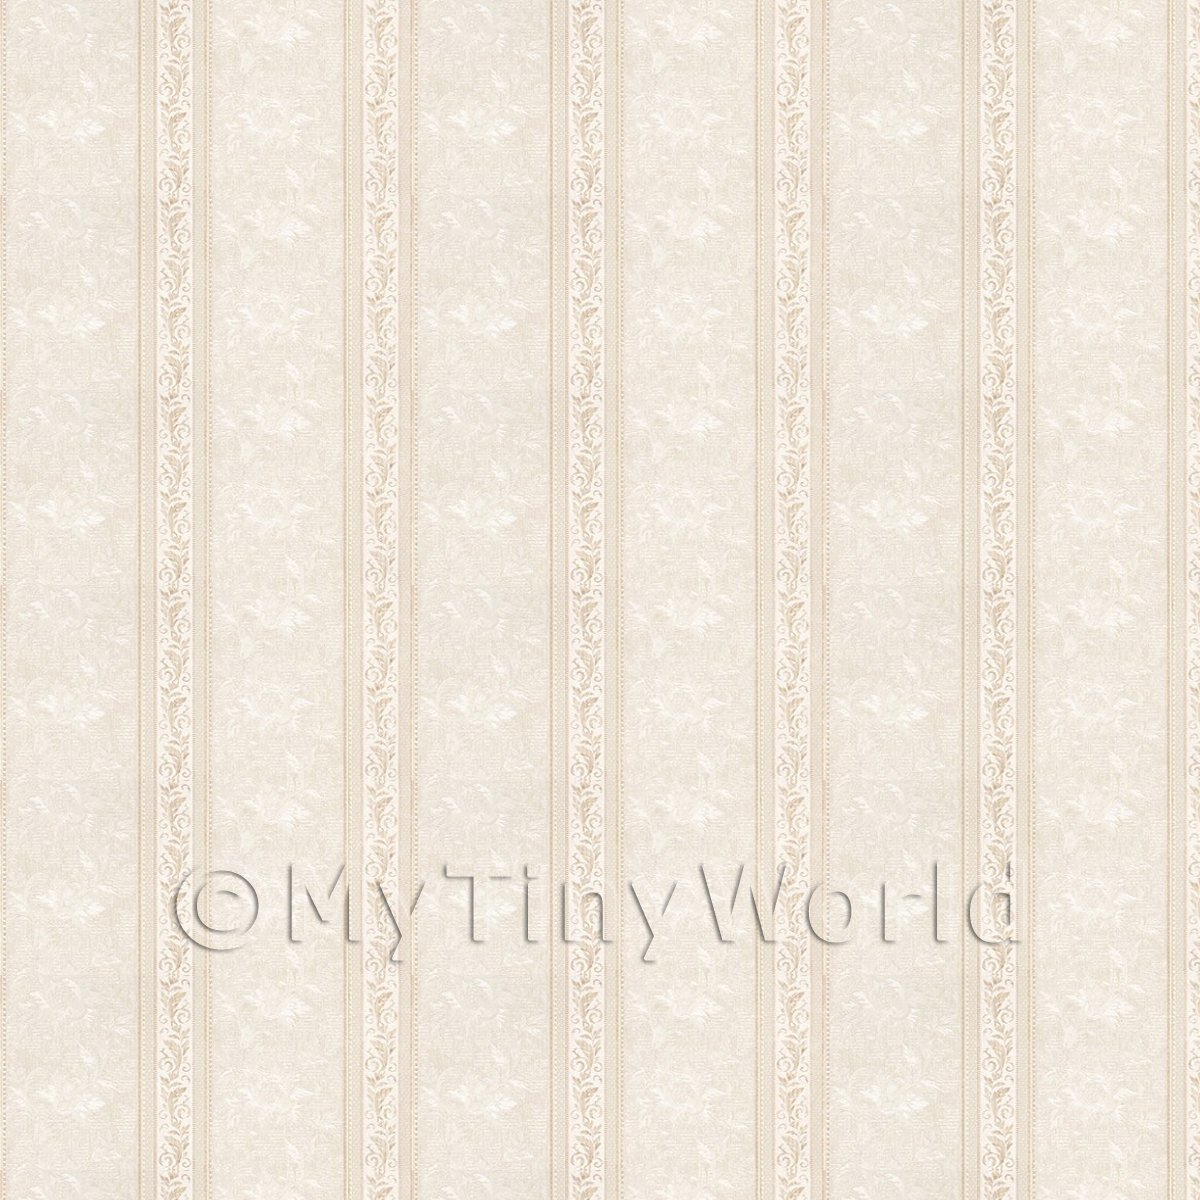 Pack of 5 Dolls House Ornate Pale Beige Striped Wallpaper Sheets